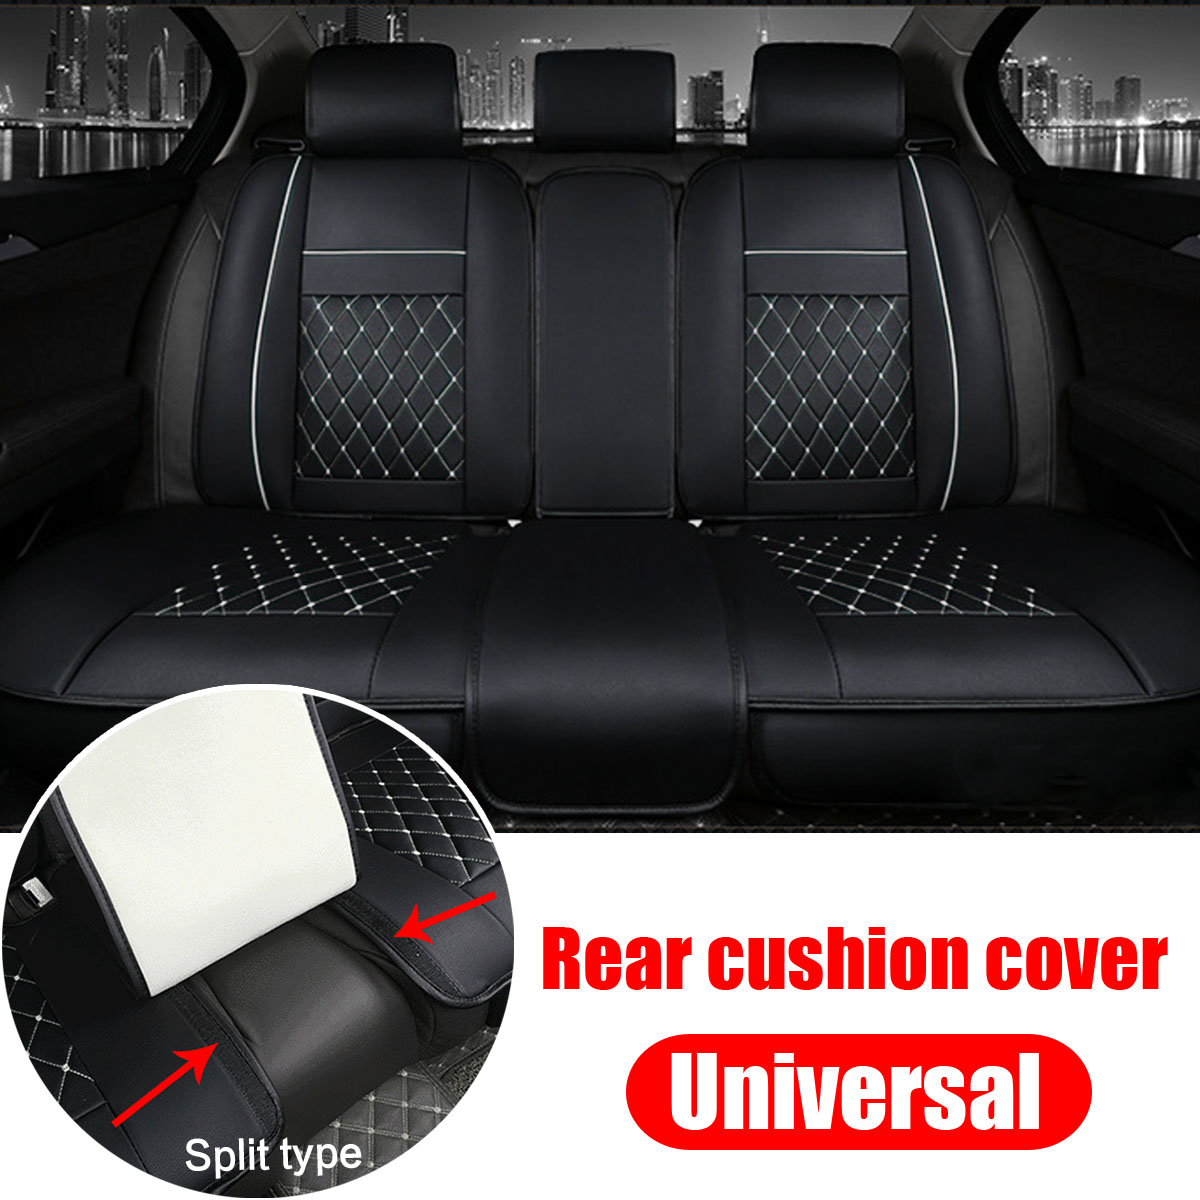 PU Leather Split Type Car Rear Seat Cushion Universal for 5 Seat Car Black and White